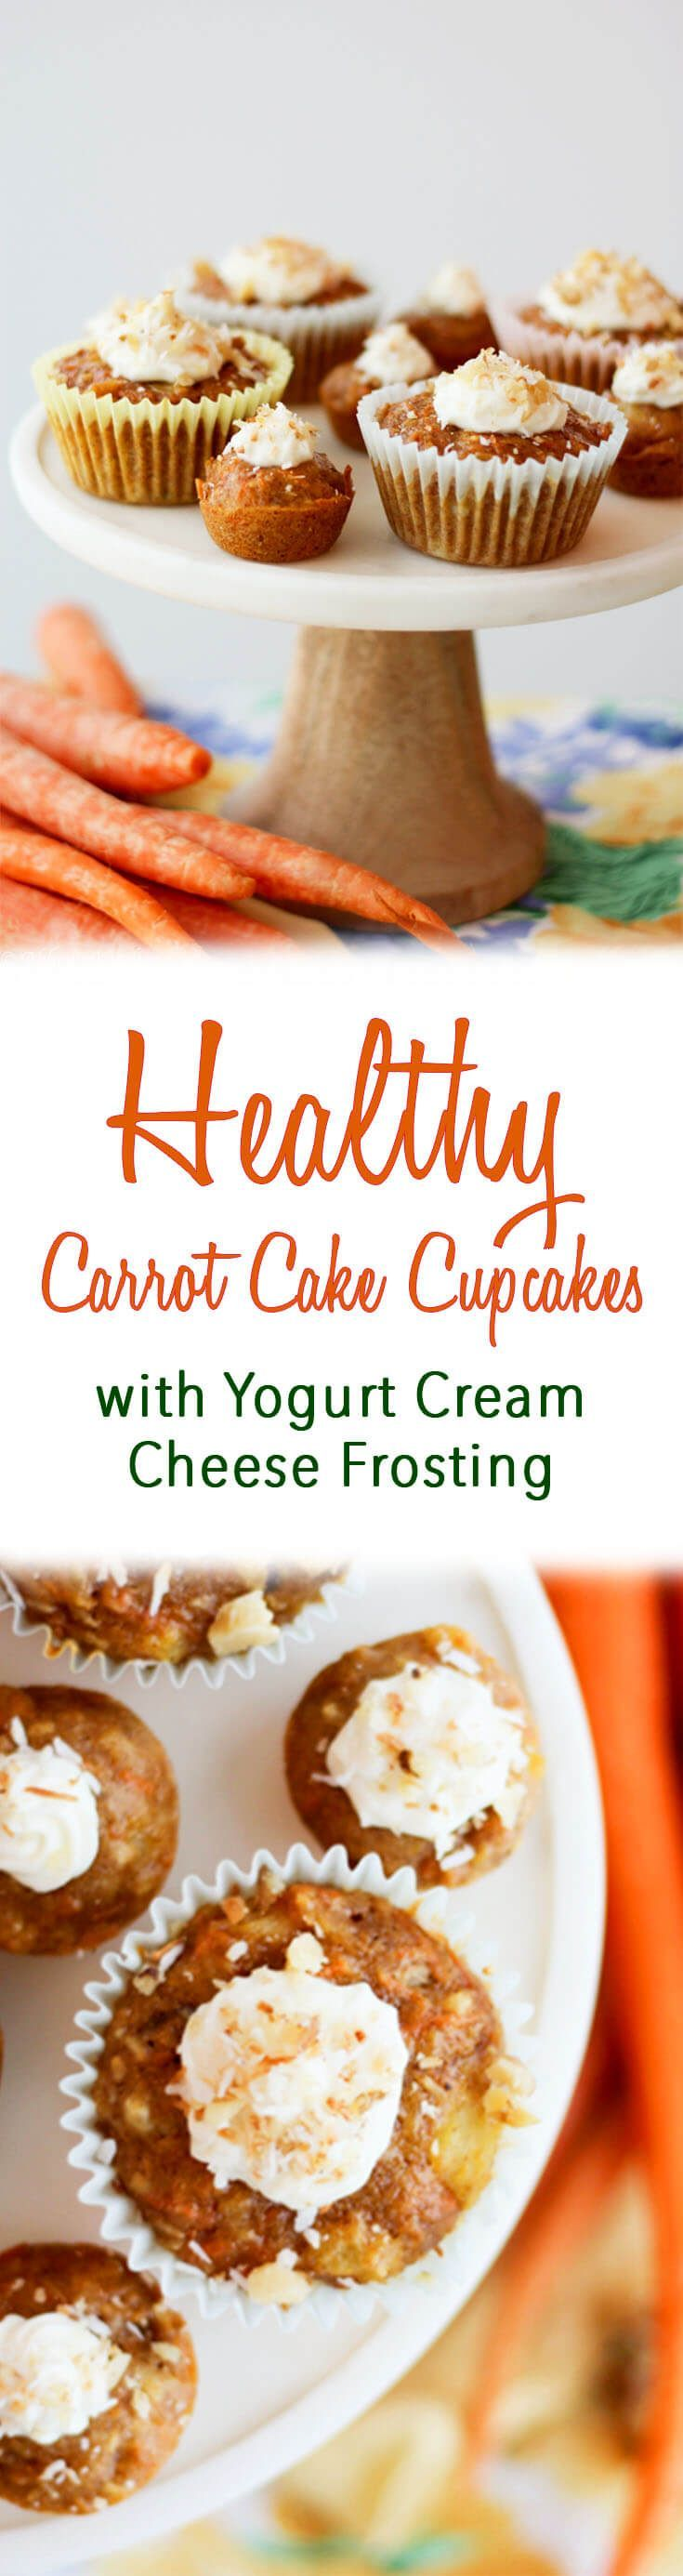 These Carrot Cake Muffins are one of my favourite healthy treats. They're moist, chewy, and topped with a decadent cream cheese frosting.